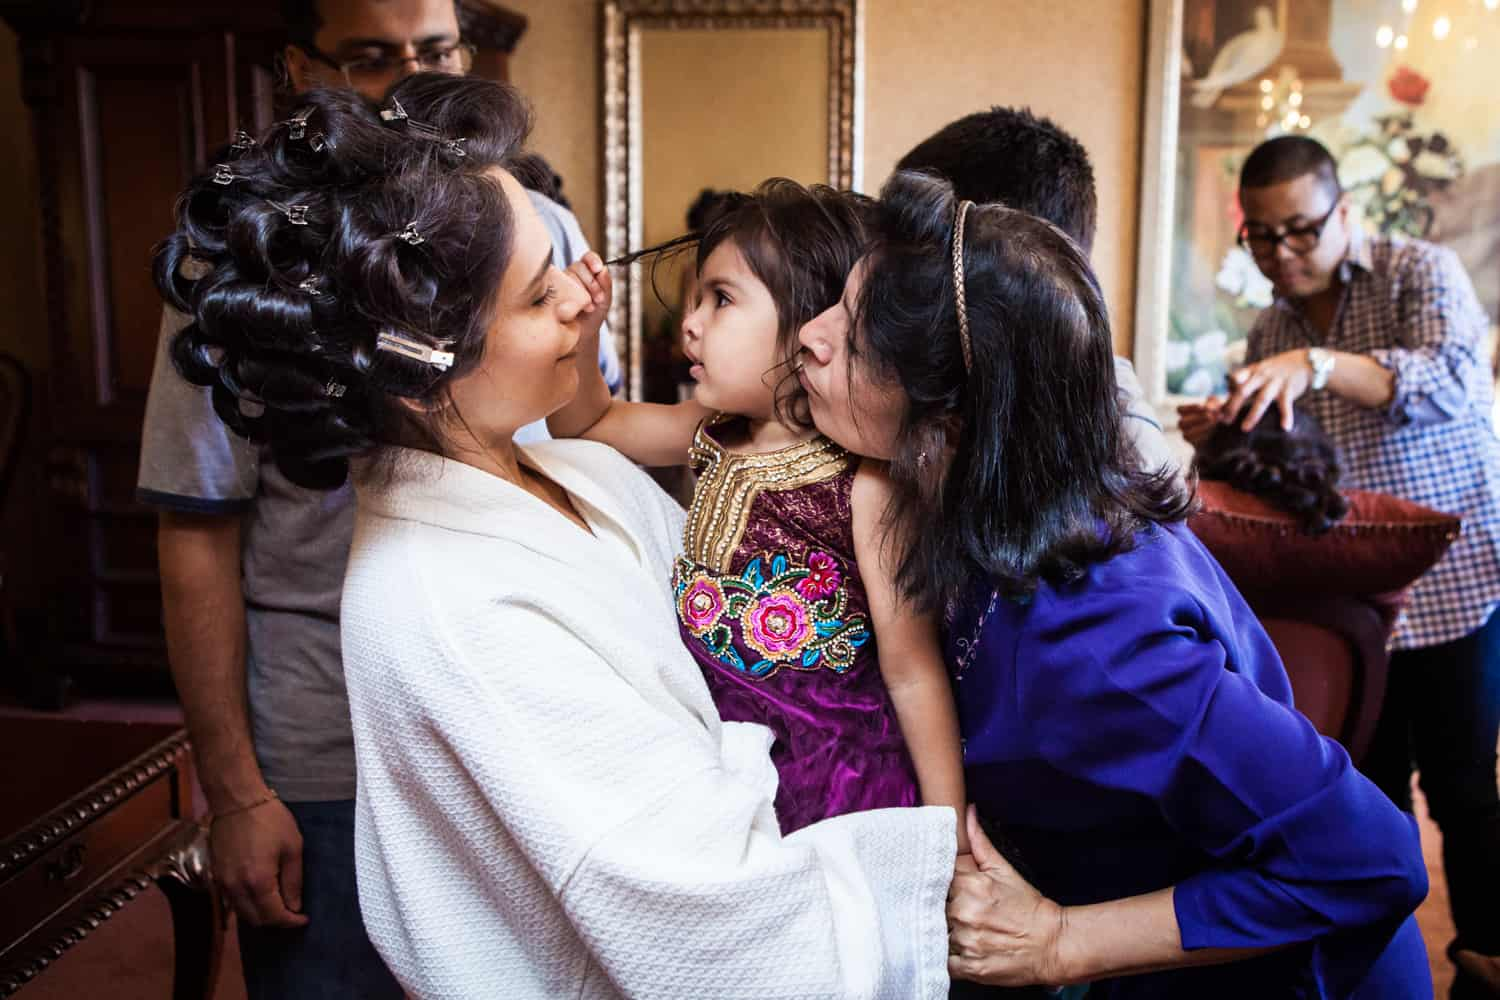 Bride in curlers holding little girl and woman kissing little girl on cheek